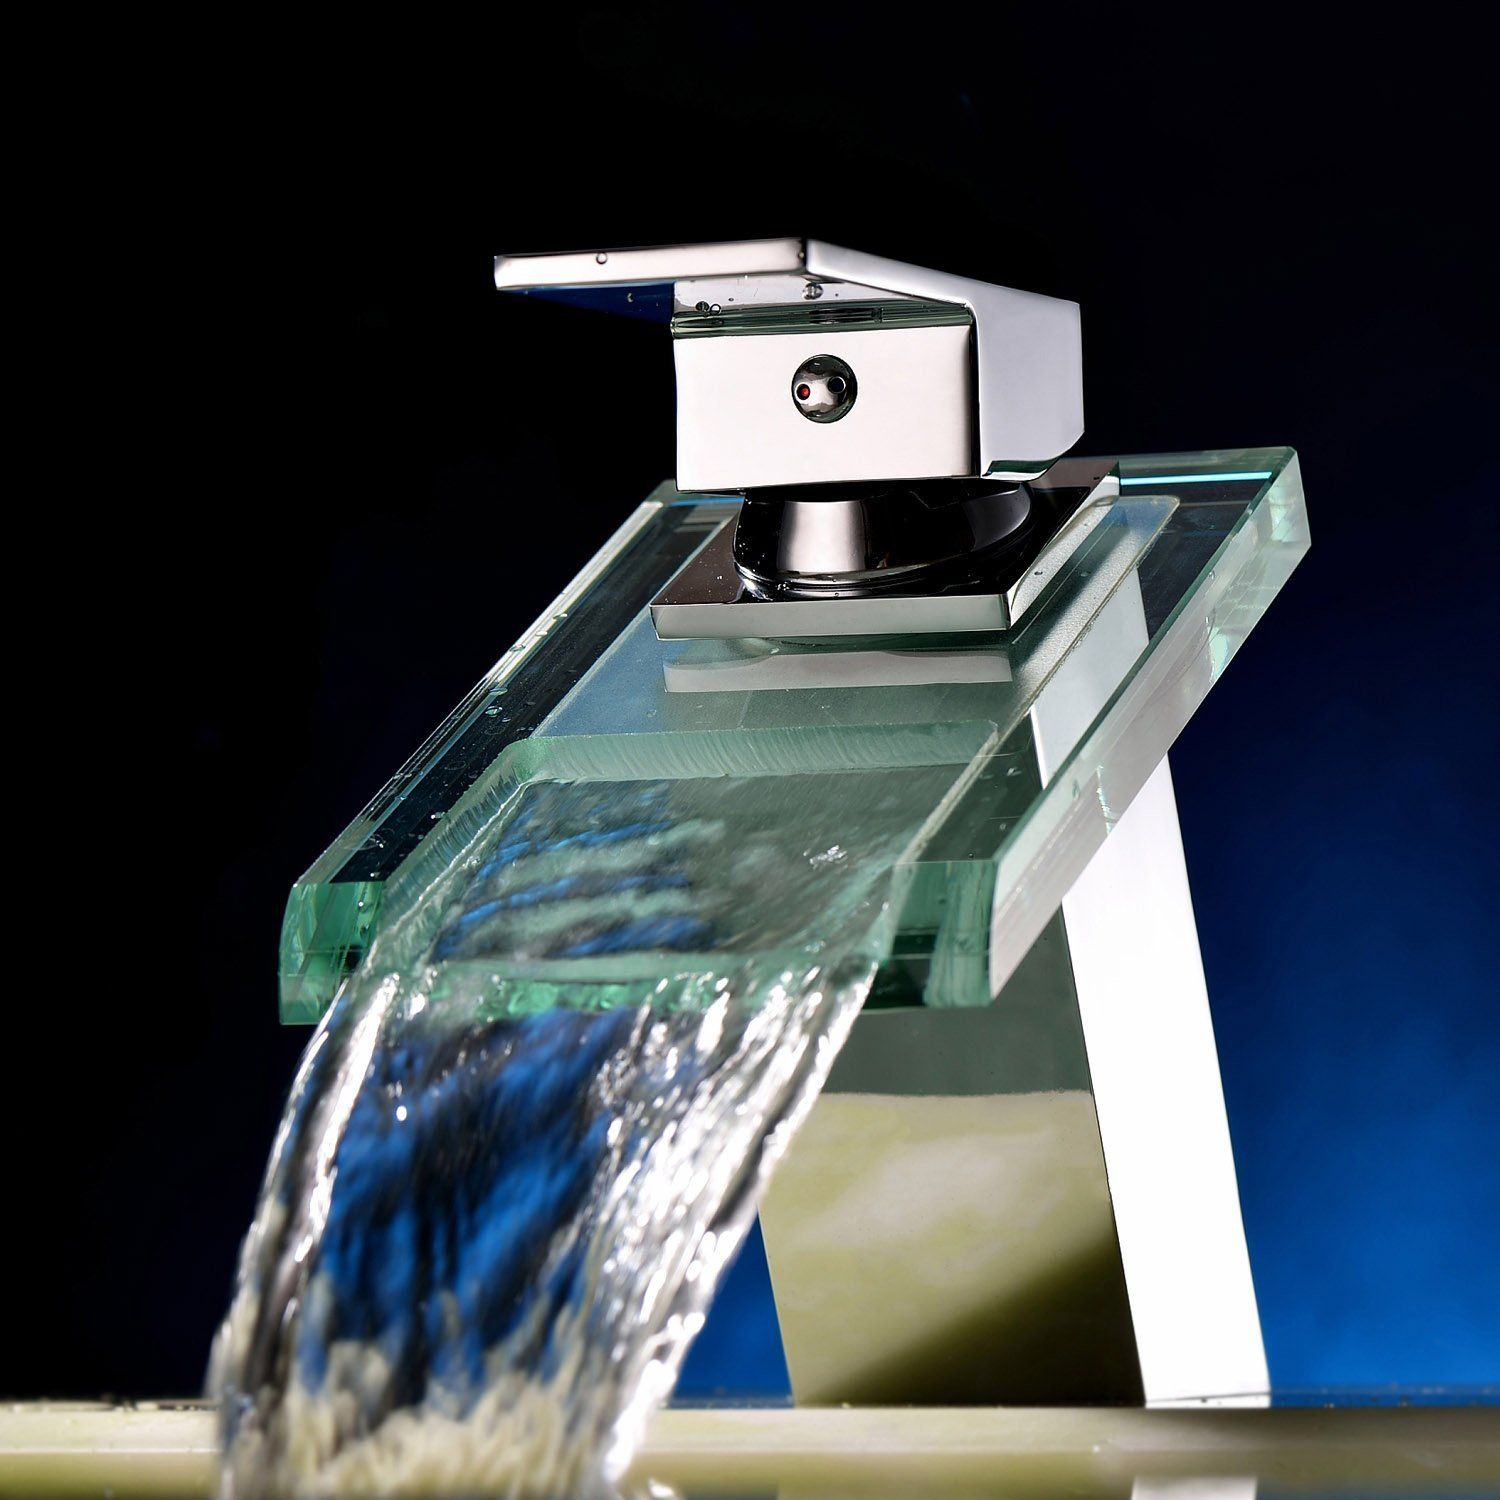 Sprinkle Widespread Waterfall Bathroom Sink Faucet with Glass Spout ...